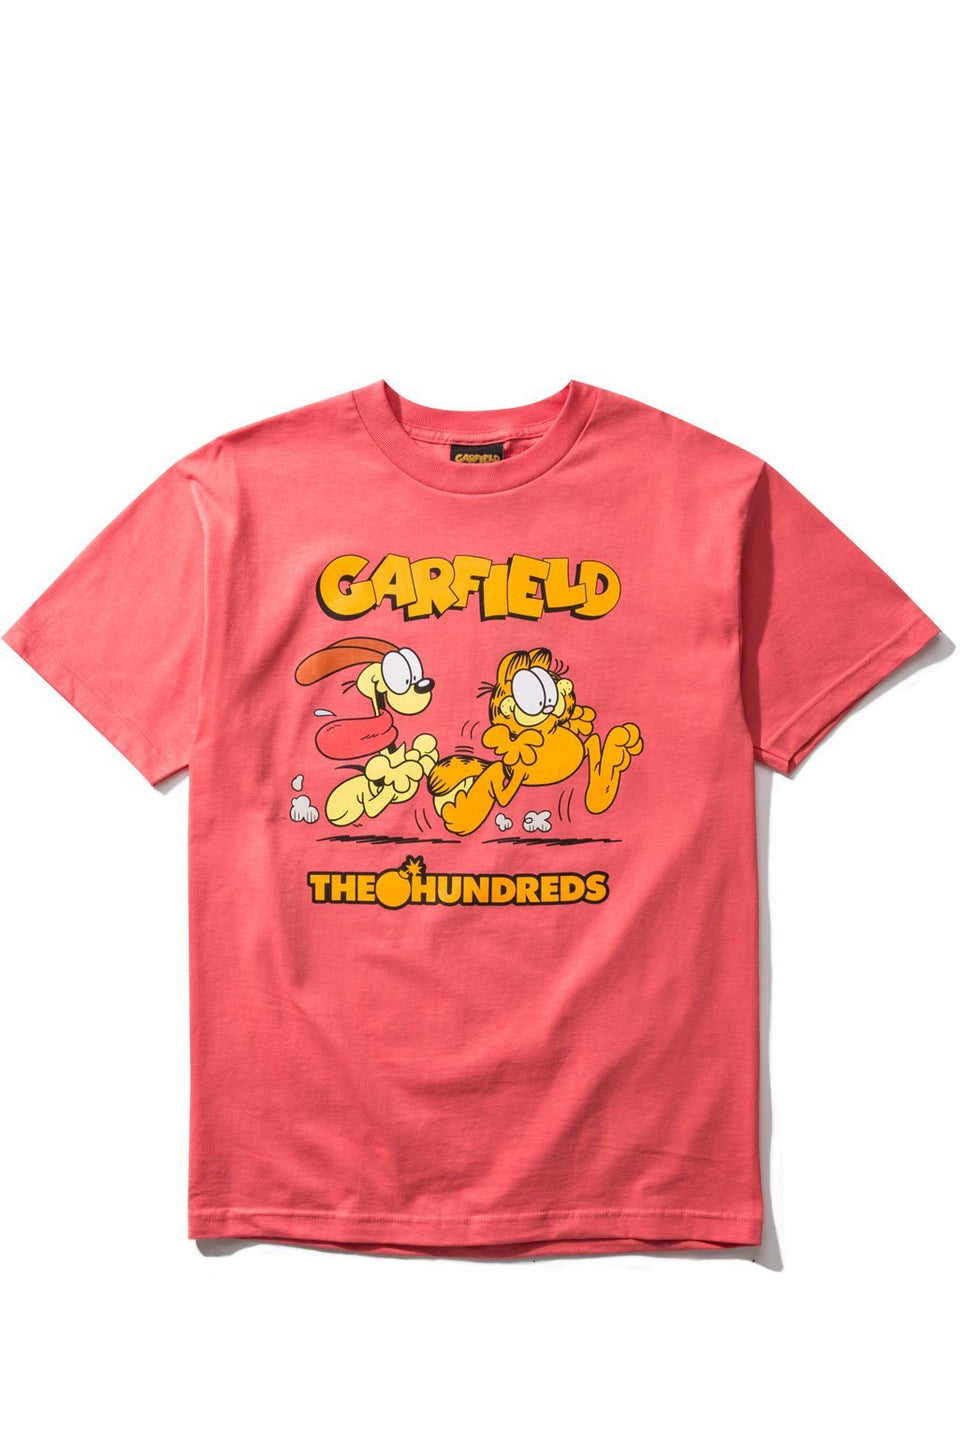 Garfield Chase T-Shirt-TOPS-The Hundreds UK